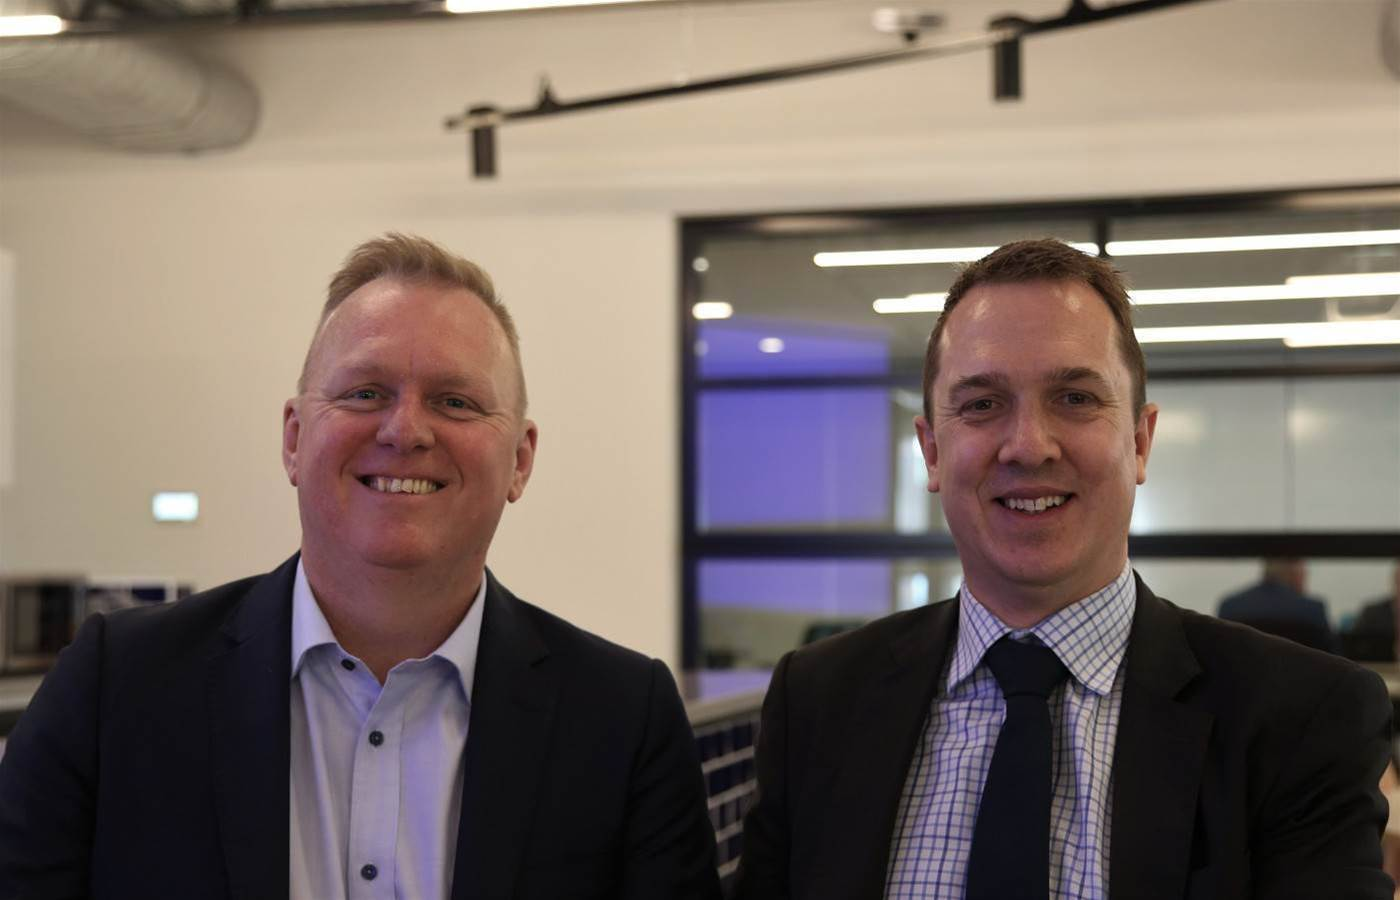 Thomas Duryea acquires Microsoft partner CNI